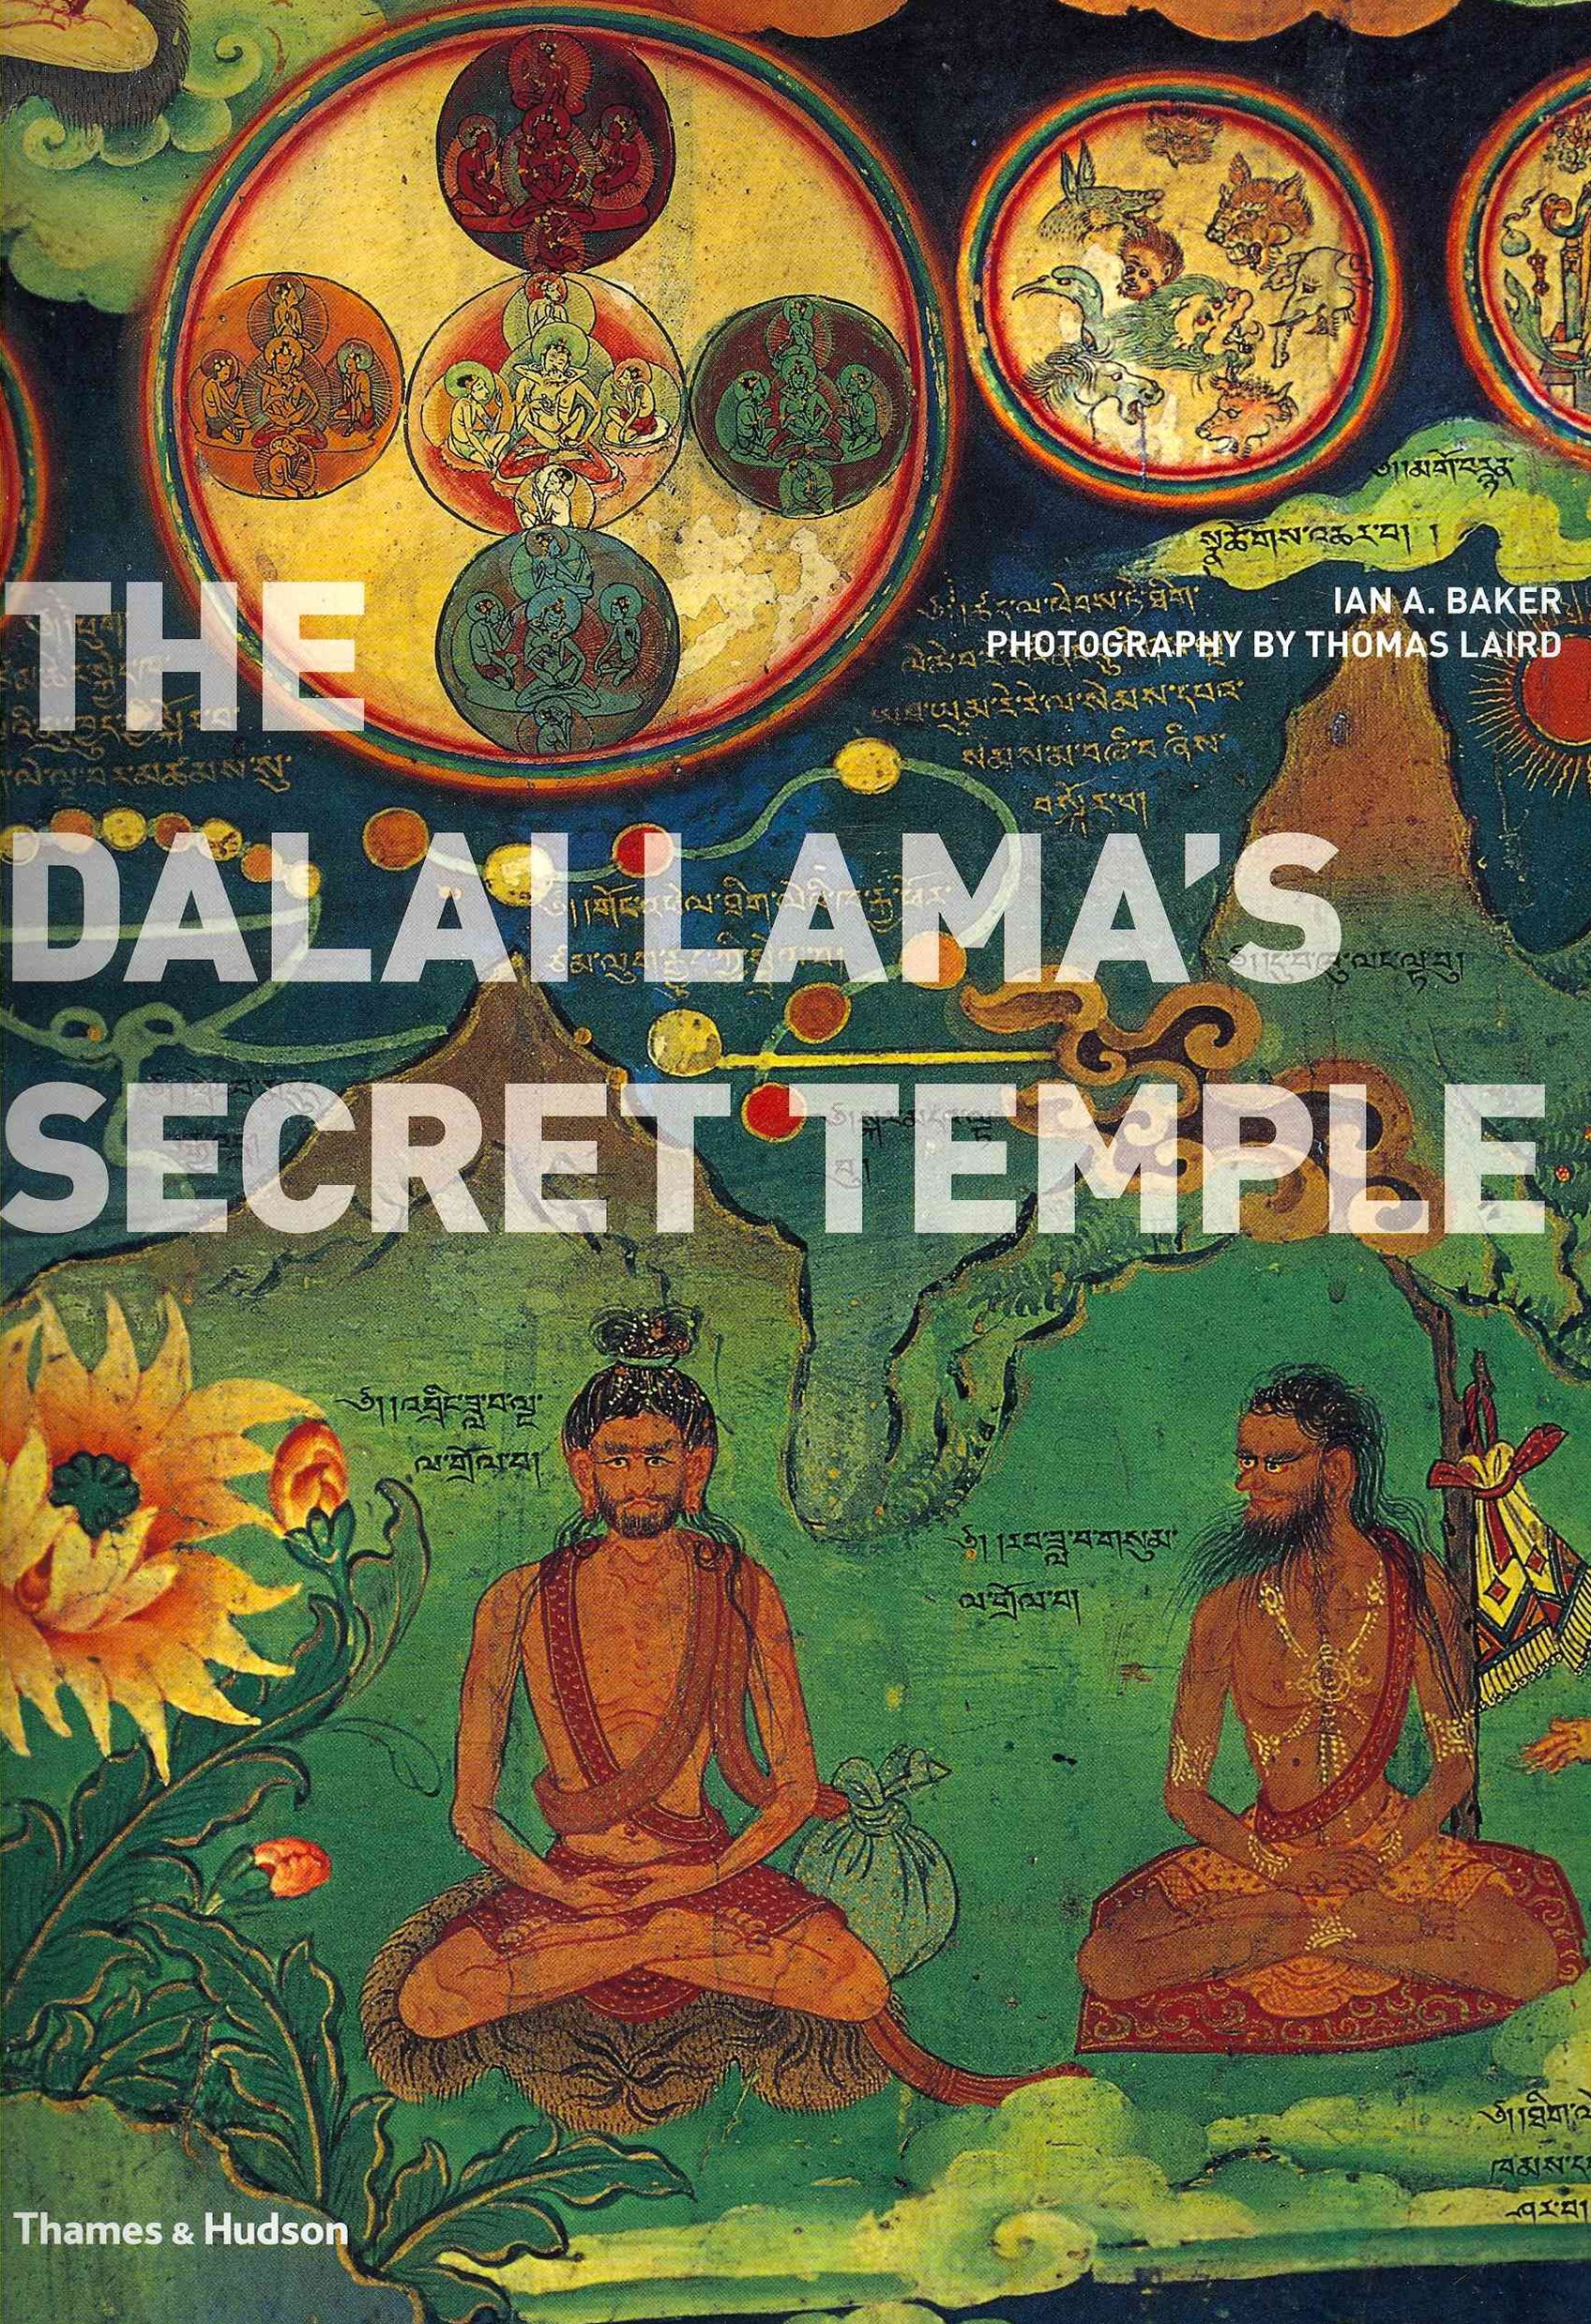 Dalai Lama's Secret Temple: Tantric Wall Paintings from Tibet